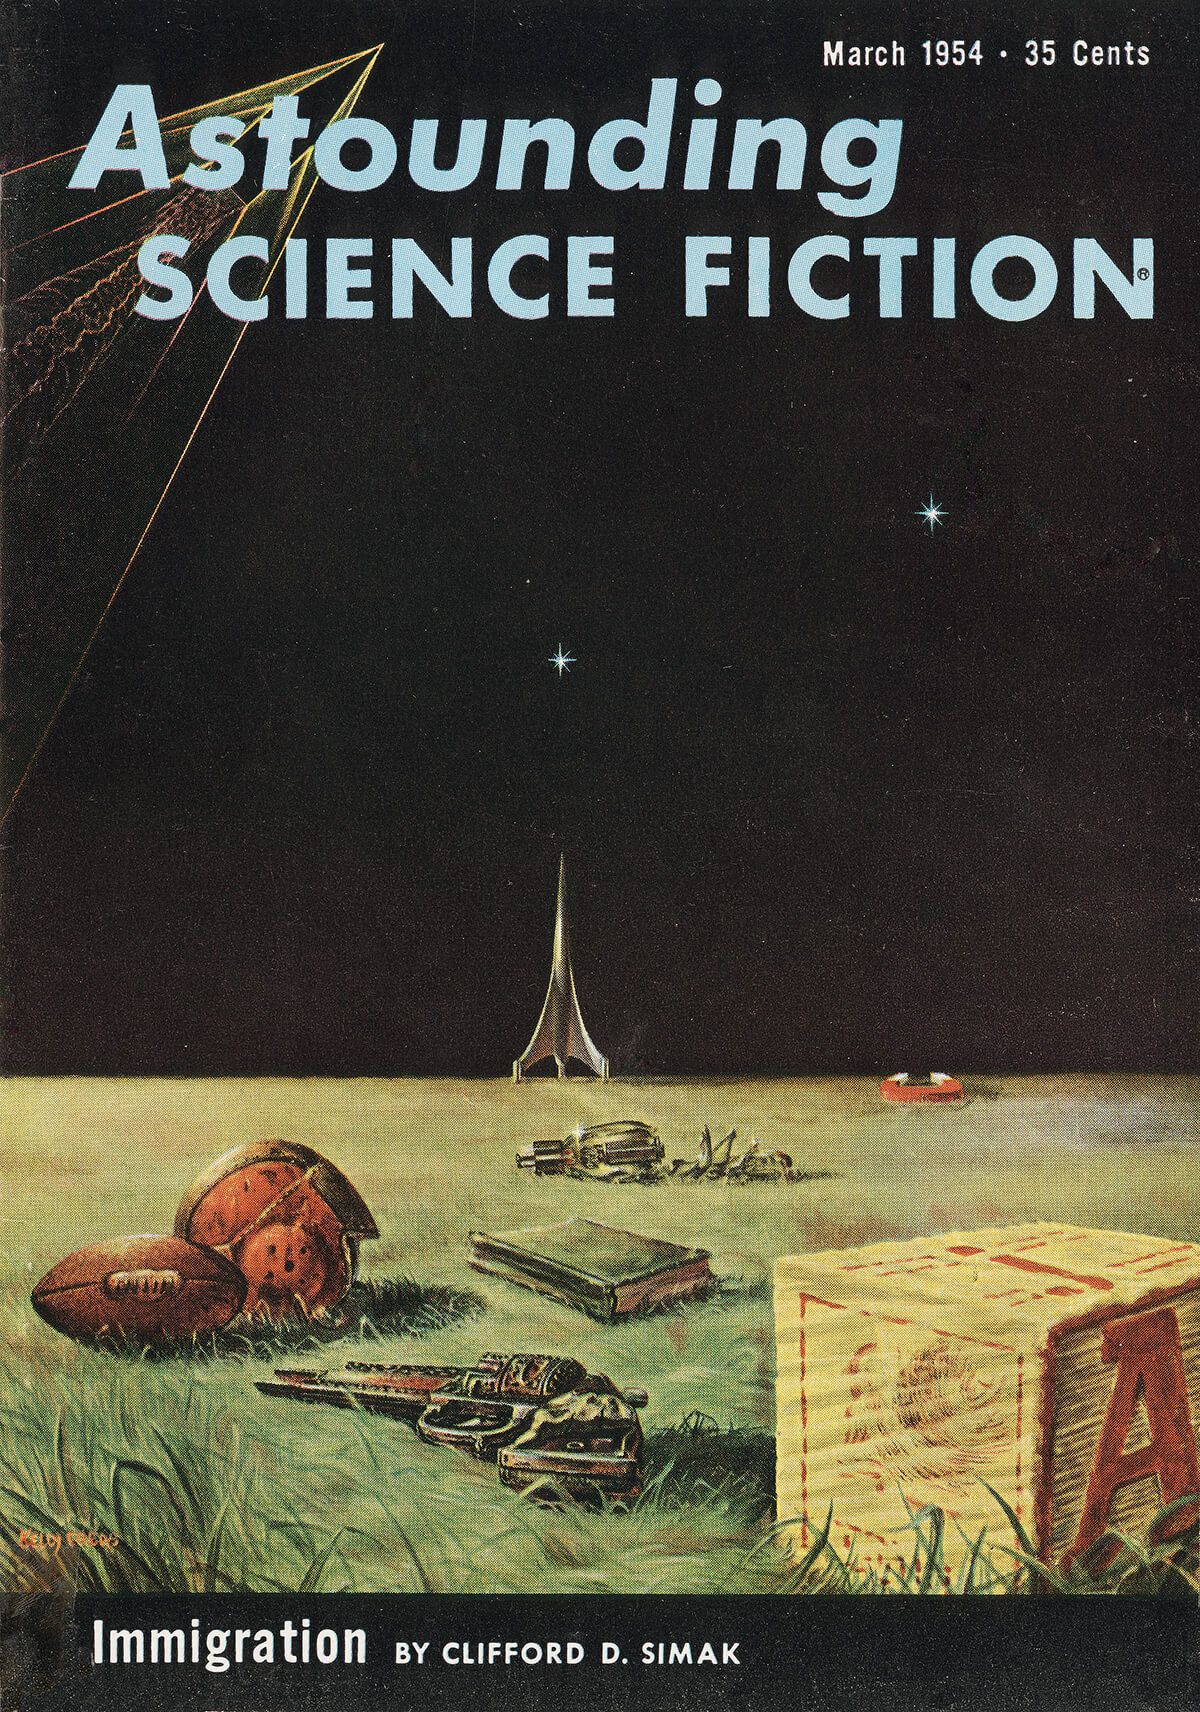 Astounding Science Fiction Mar 1954